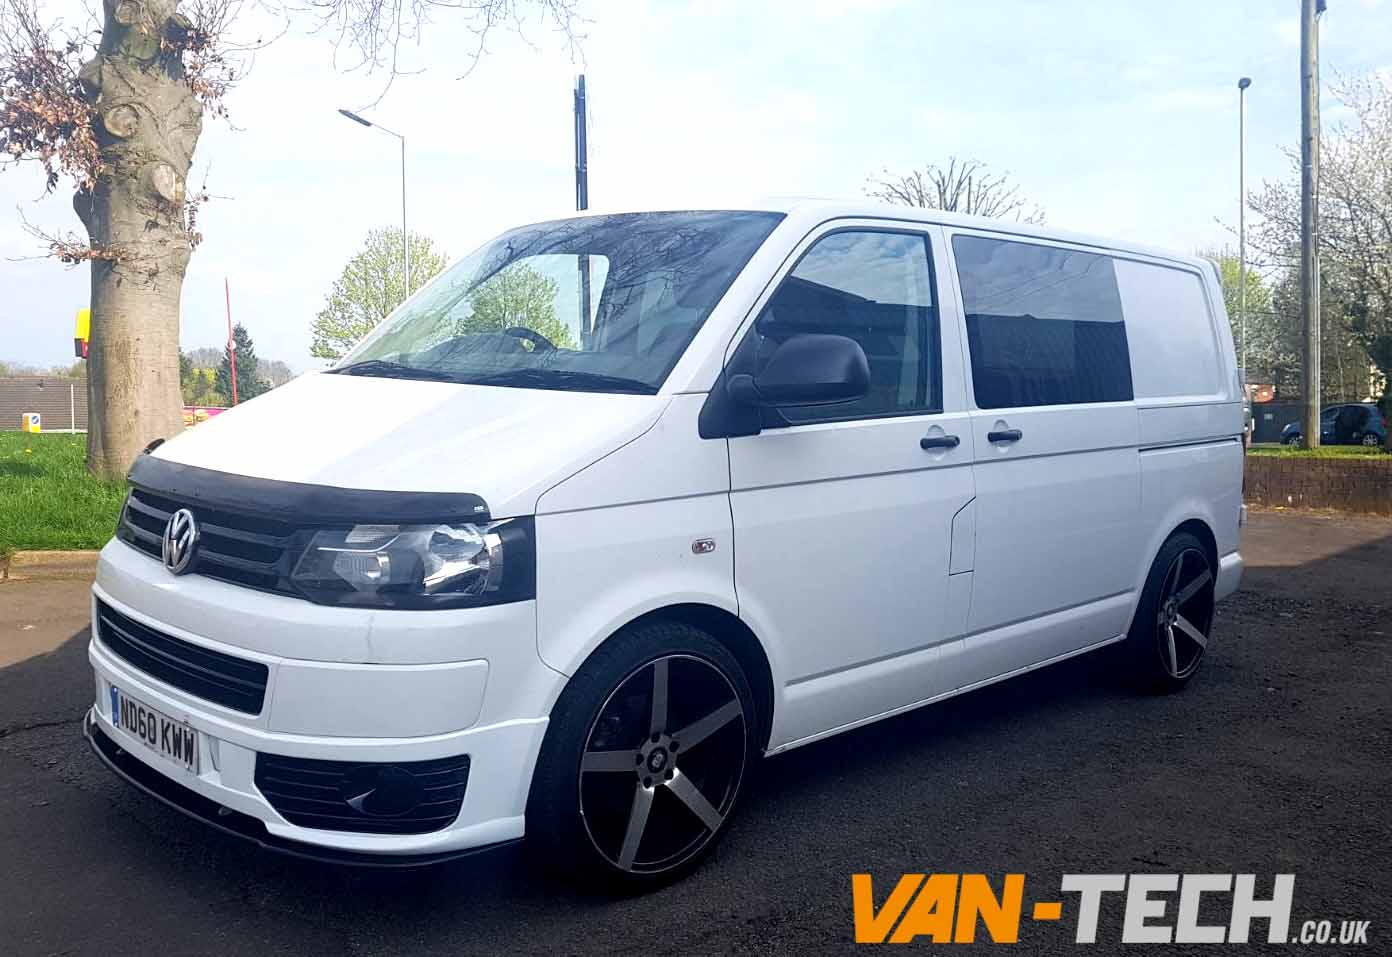 sold volkswagen transporter white t5 1 2010 diesel. Black Bedroom Furniture Sets. Home Design Ideas